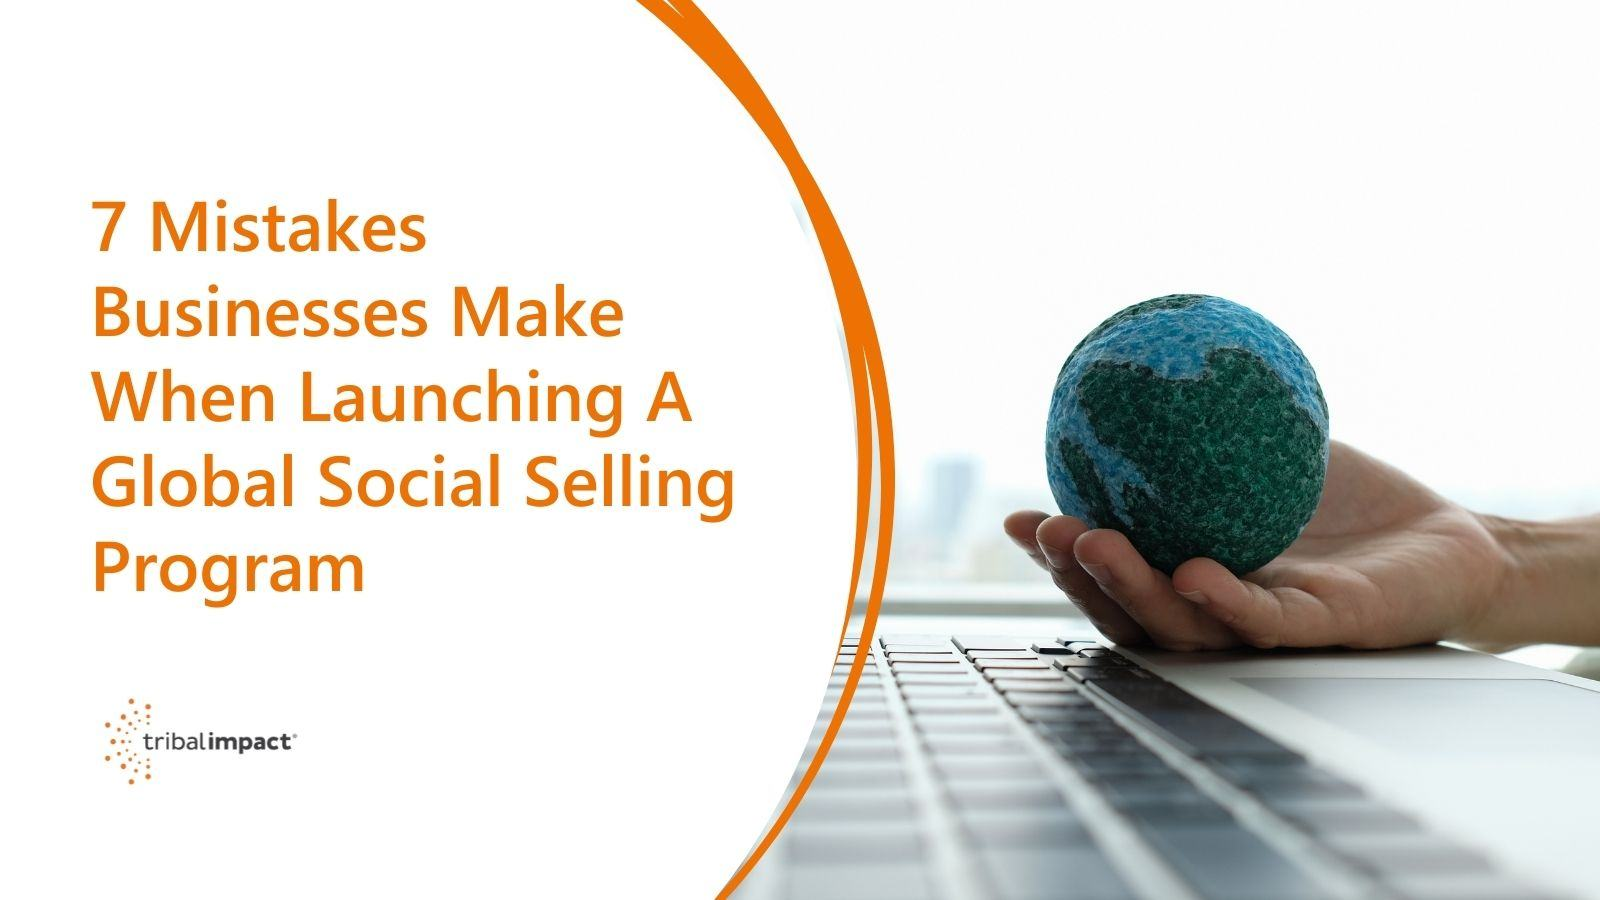 7 Mistakes Businesses Make When Launching A Global Social Selling Program blog image